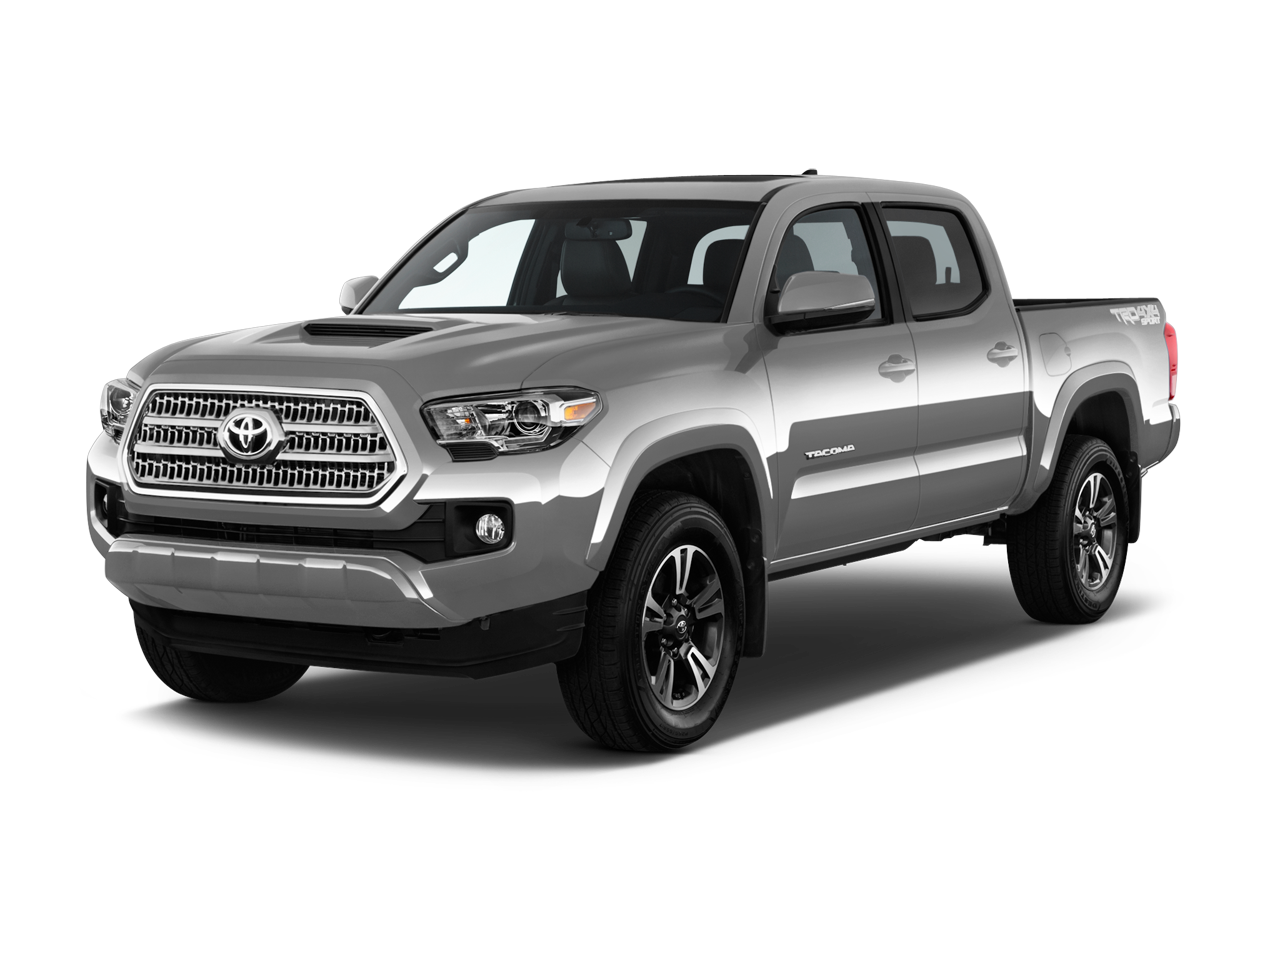 new 2017 toyota tacoma trd sport 4wd double cab near. Black Bedroom Furniture Sets. Home Design Ideas